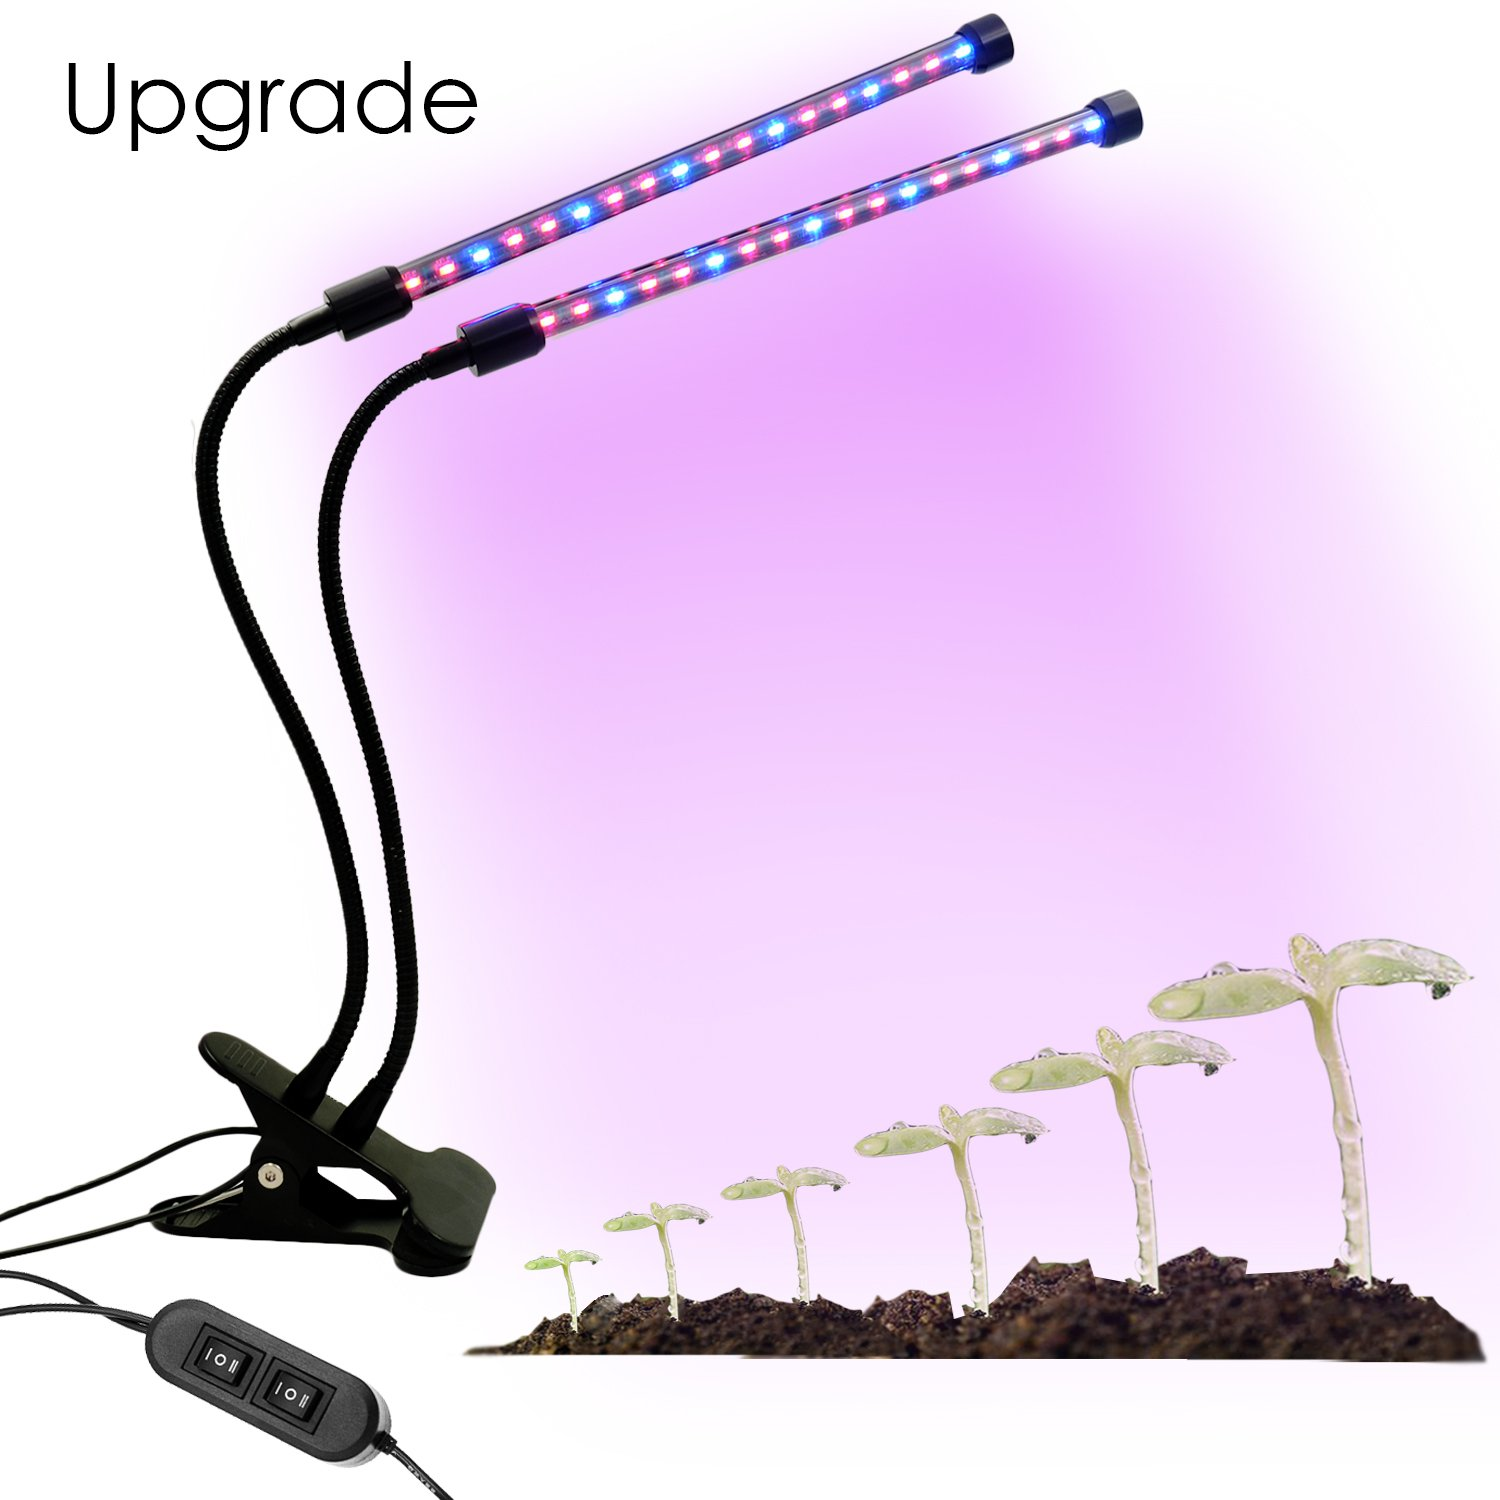 IdentikitGift Dual Head LED Plant Grow Light 18 W 2 Dimmable Levels Grow Lamp Bulbswith Adjustable Flexible 360 Degree Gooseneck for Indoor Plants Hydroponics Greenhouse Gardening 2017 NEW upgrade